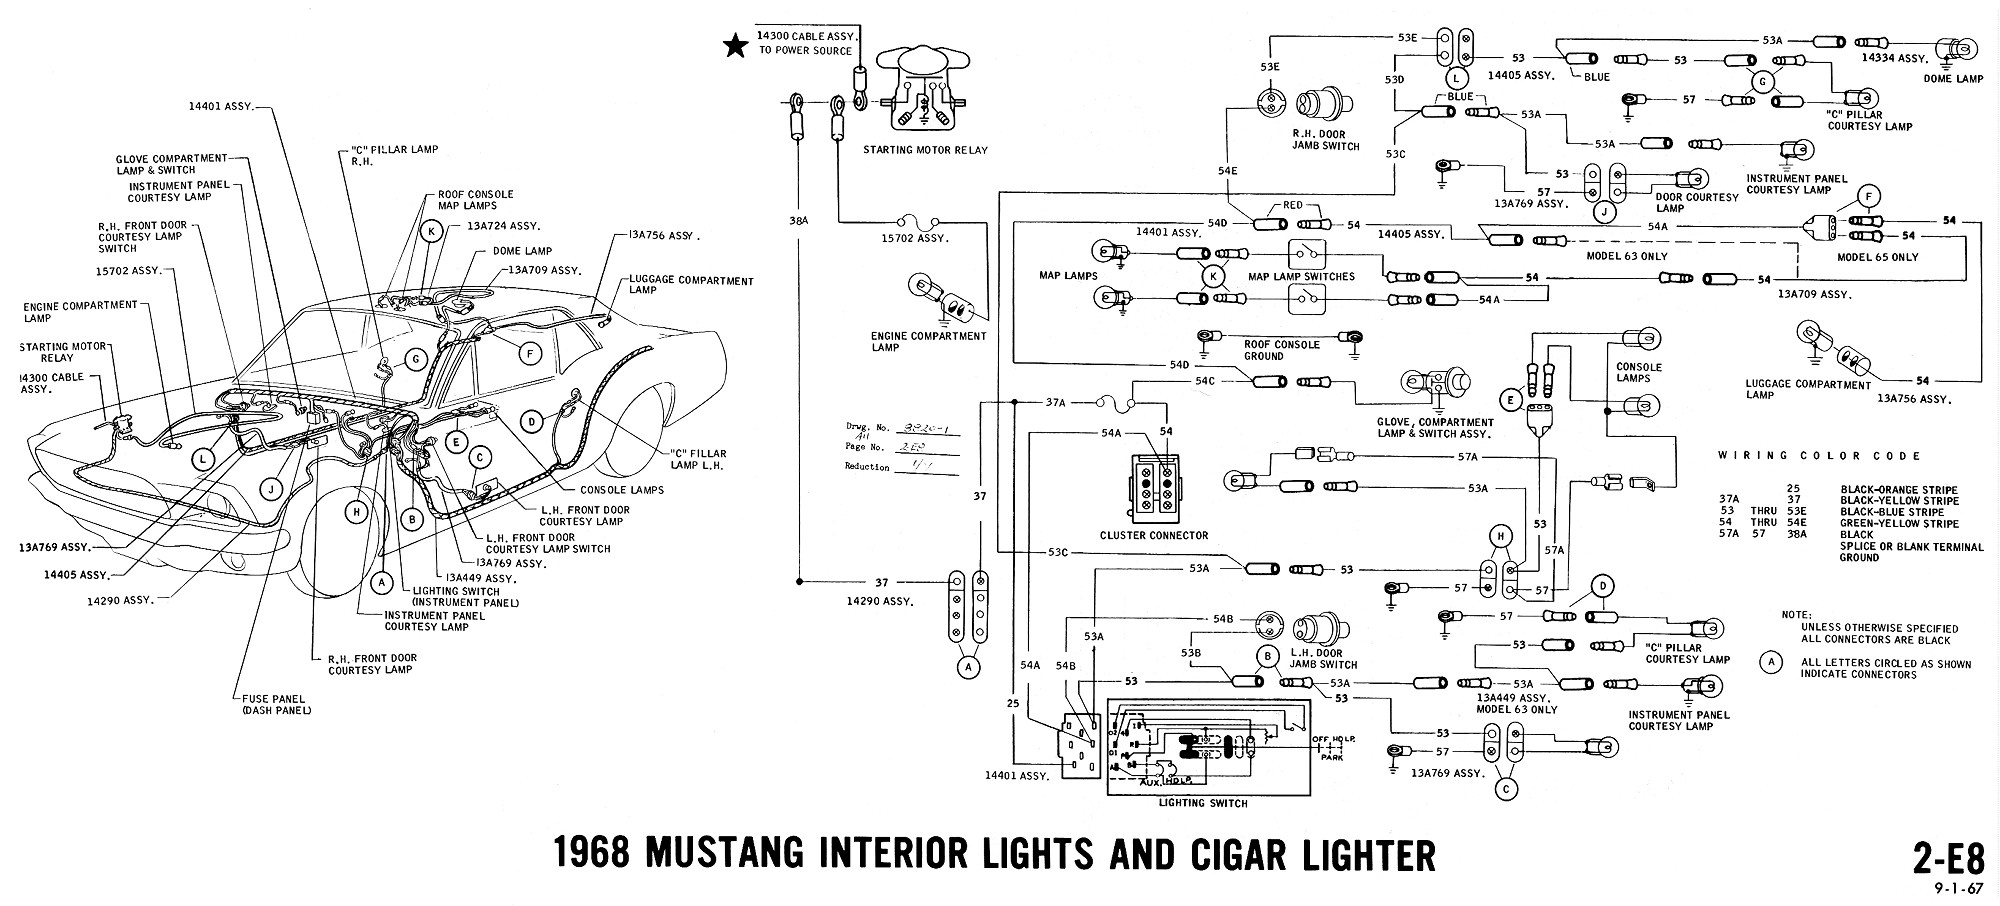 1968 mustang wiring diagrams and vacuum schematics 1970 Mustang Wiring Harness 2007 Mustang Wiring Harness Diagram